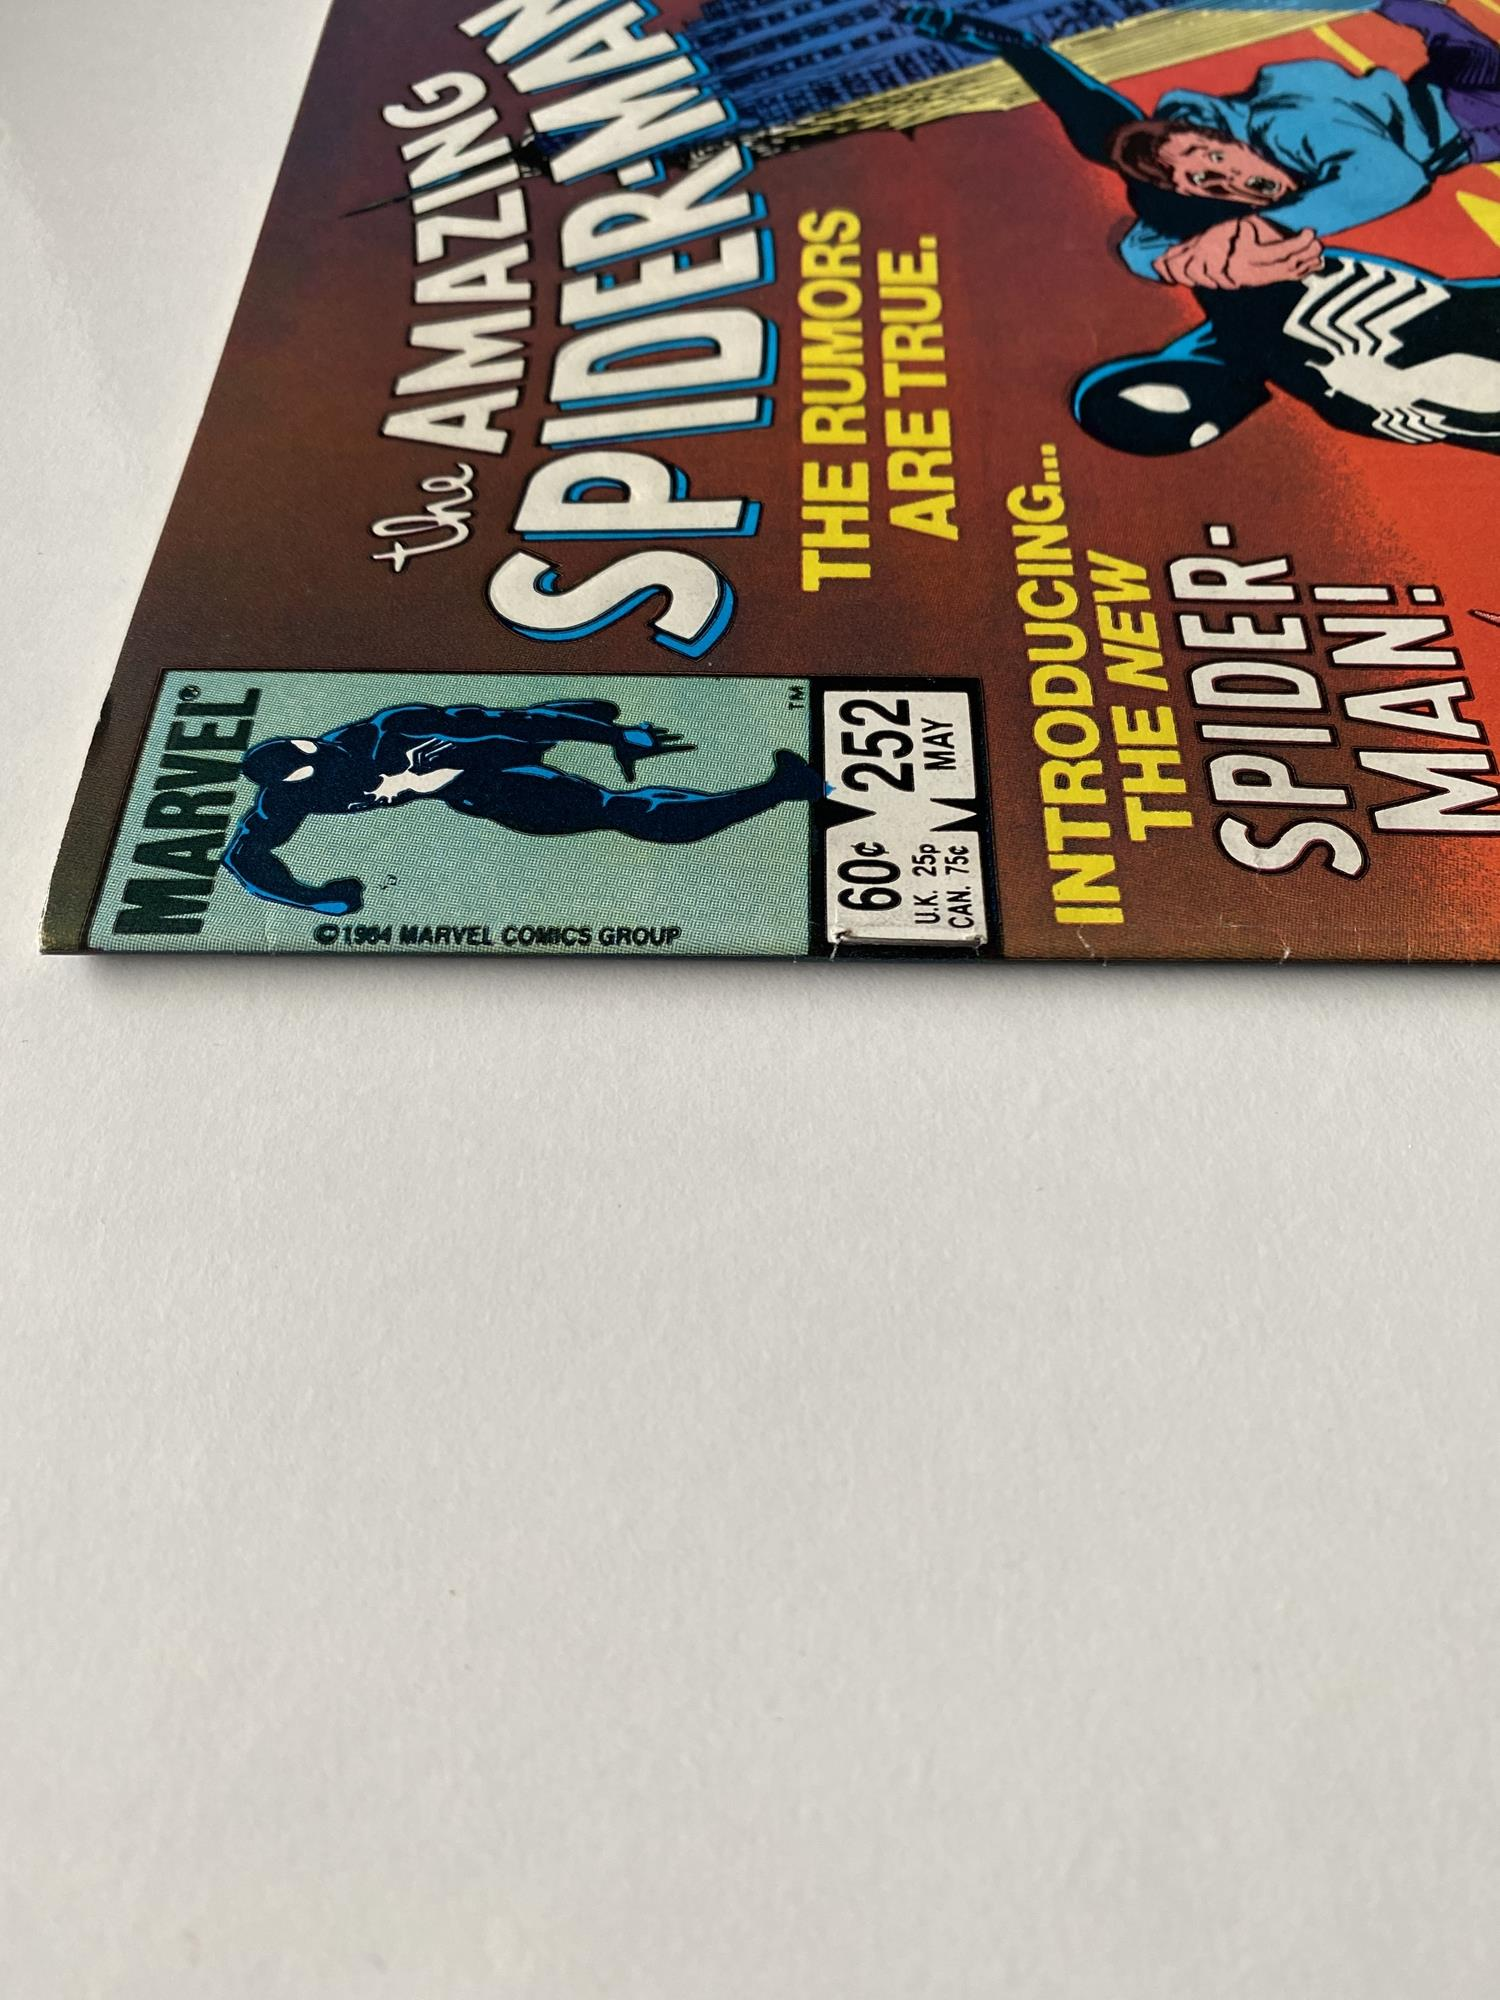 Lot 24 - AMAZING SPIDER-MAN # 252 (1984 - MARVEL - Cents/Pence Copy) -